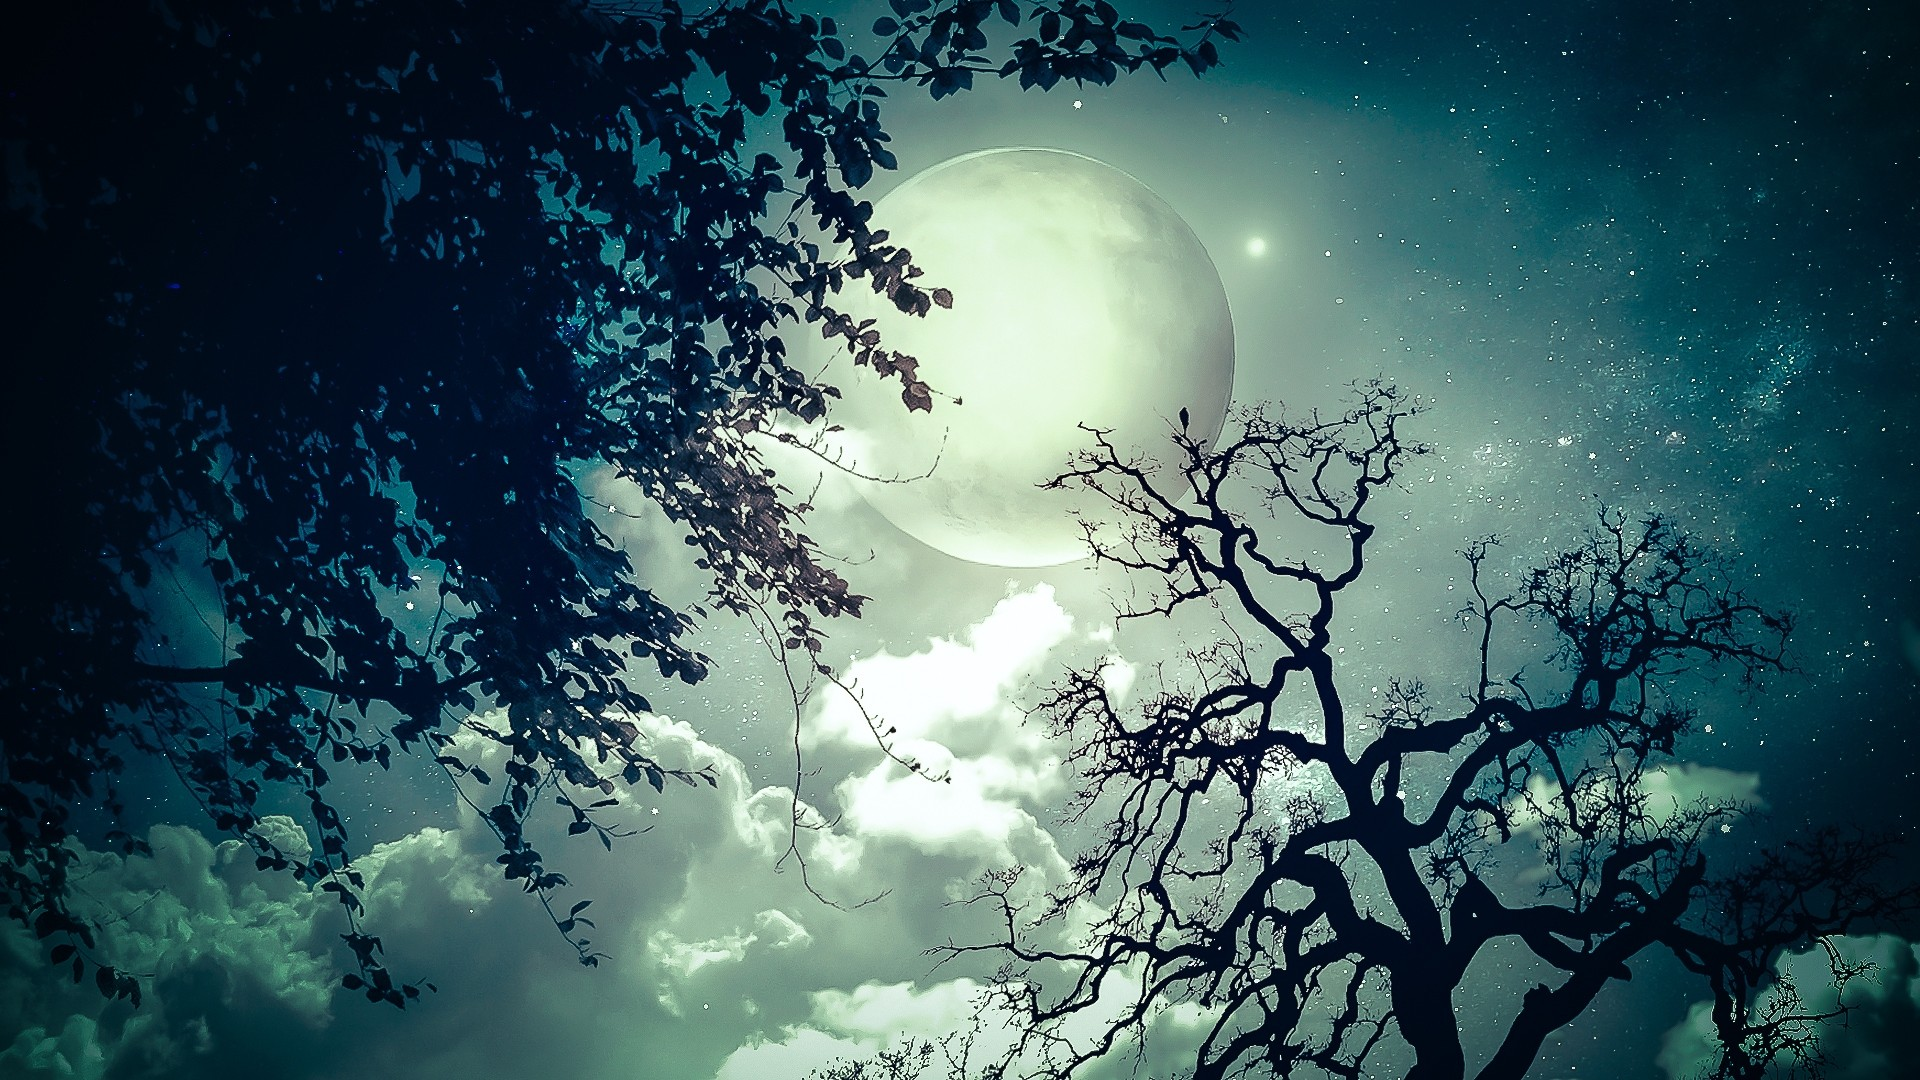 Moon And Stars Download Wallpaper